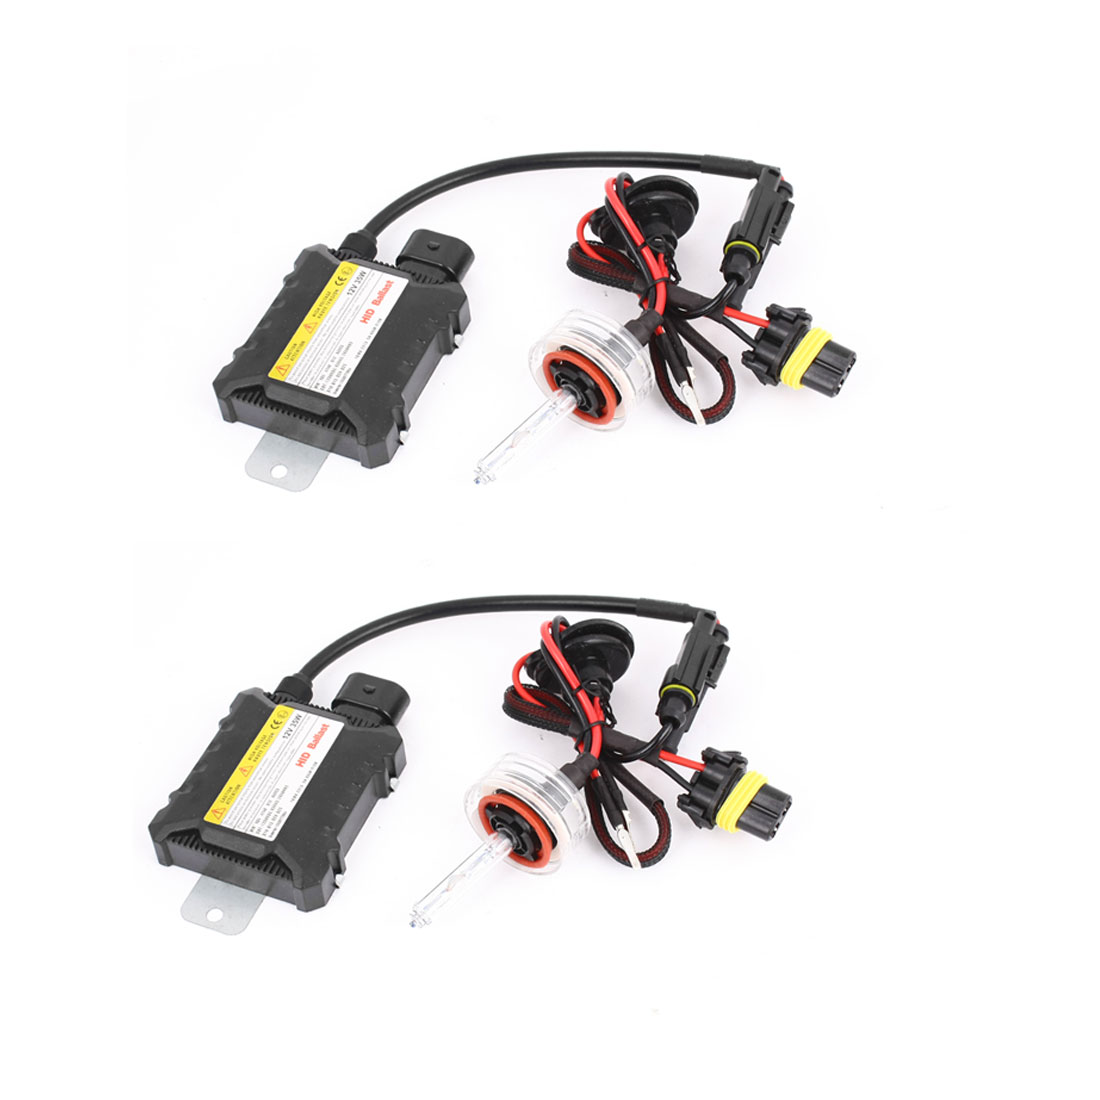 2 Pcs 8000K 12V 35W Car HID Xenon Conversion Kit Slim Ballast H11 Bulbs Headlight